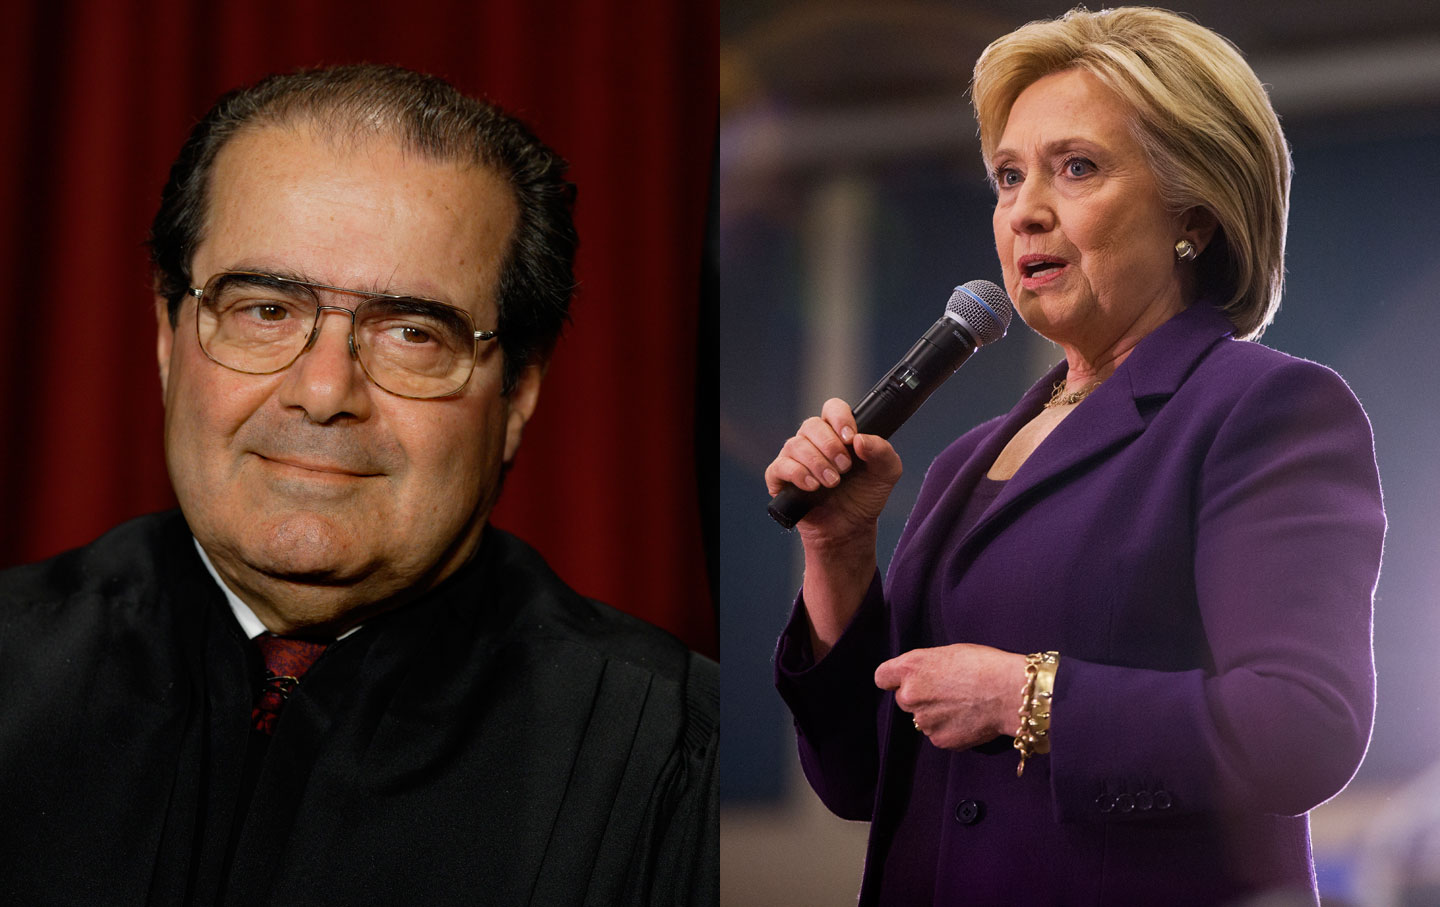 Scalia, Clinton